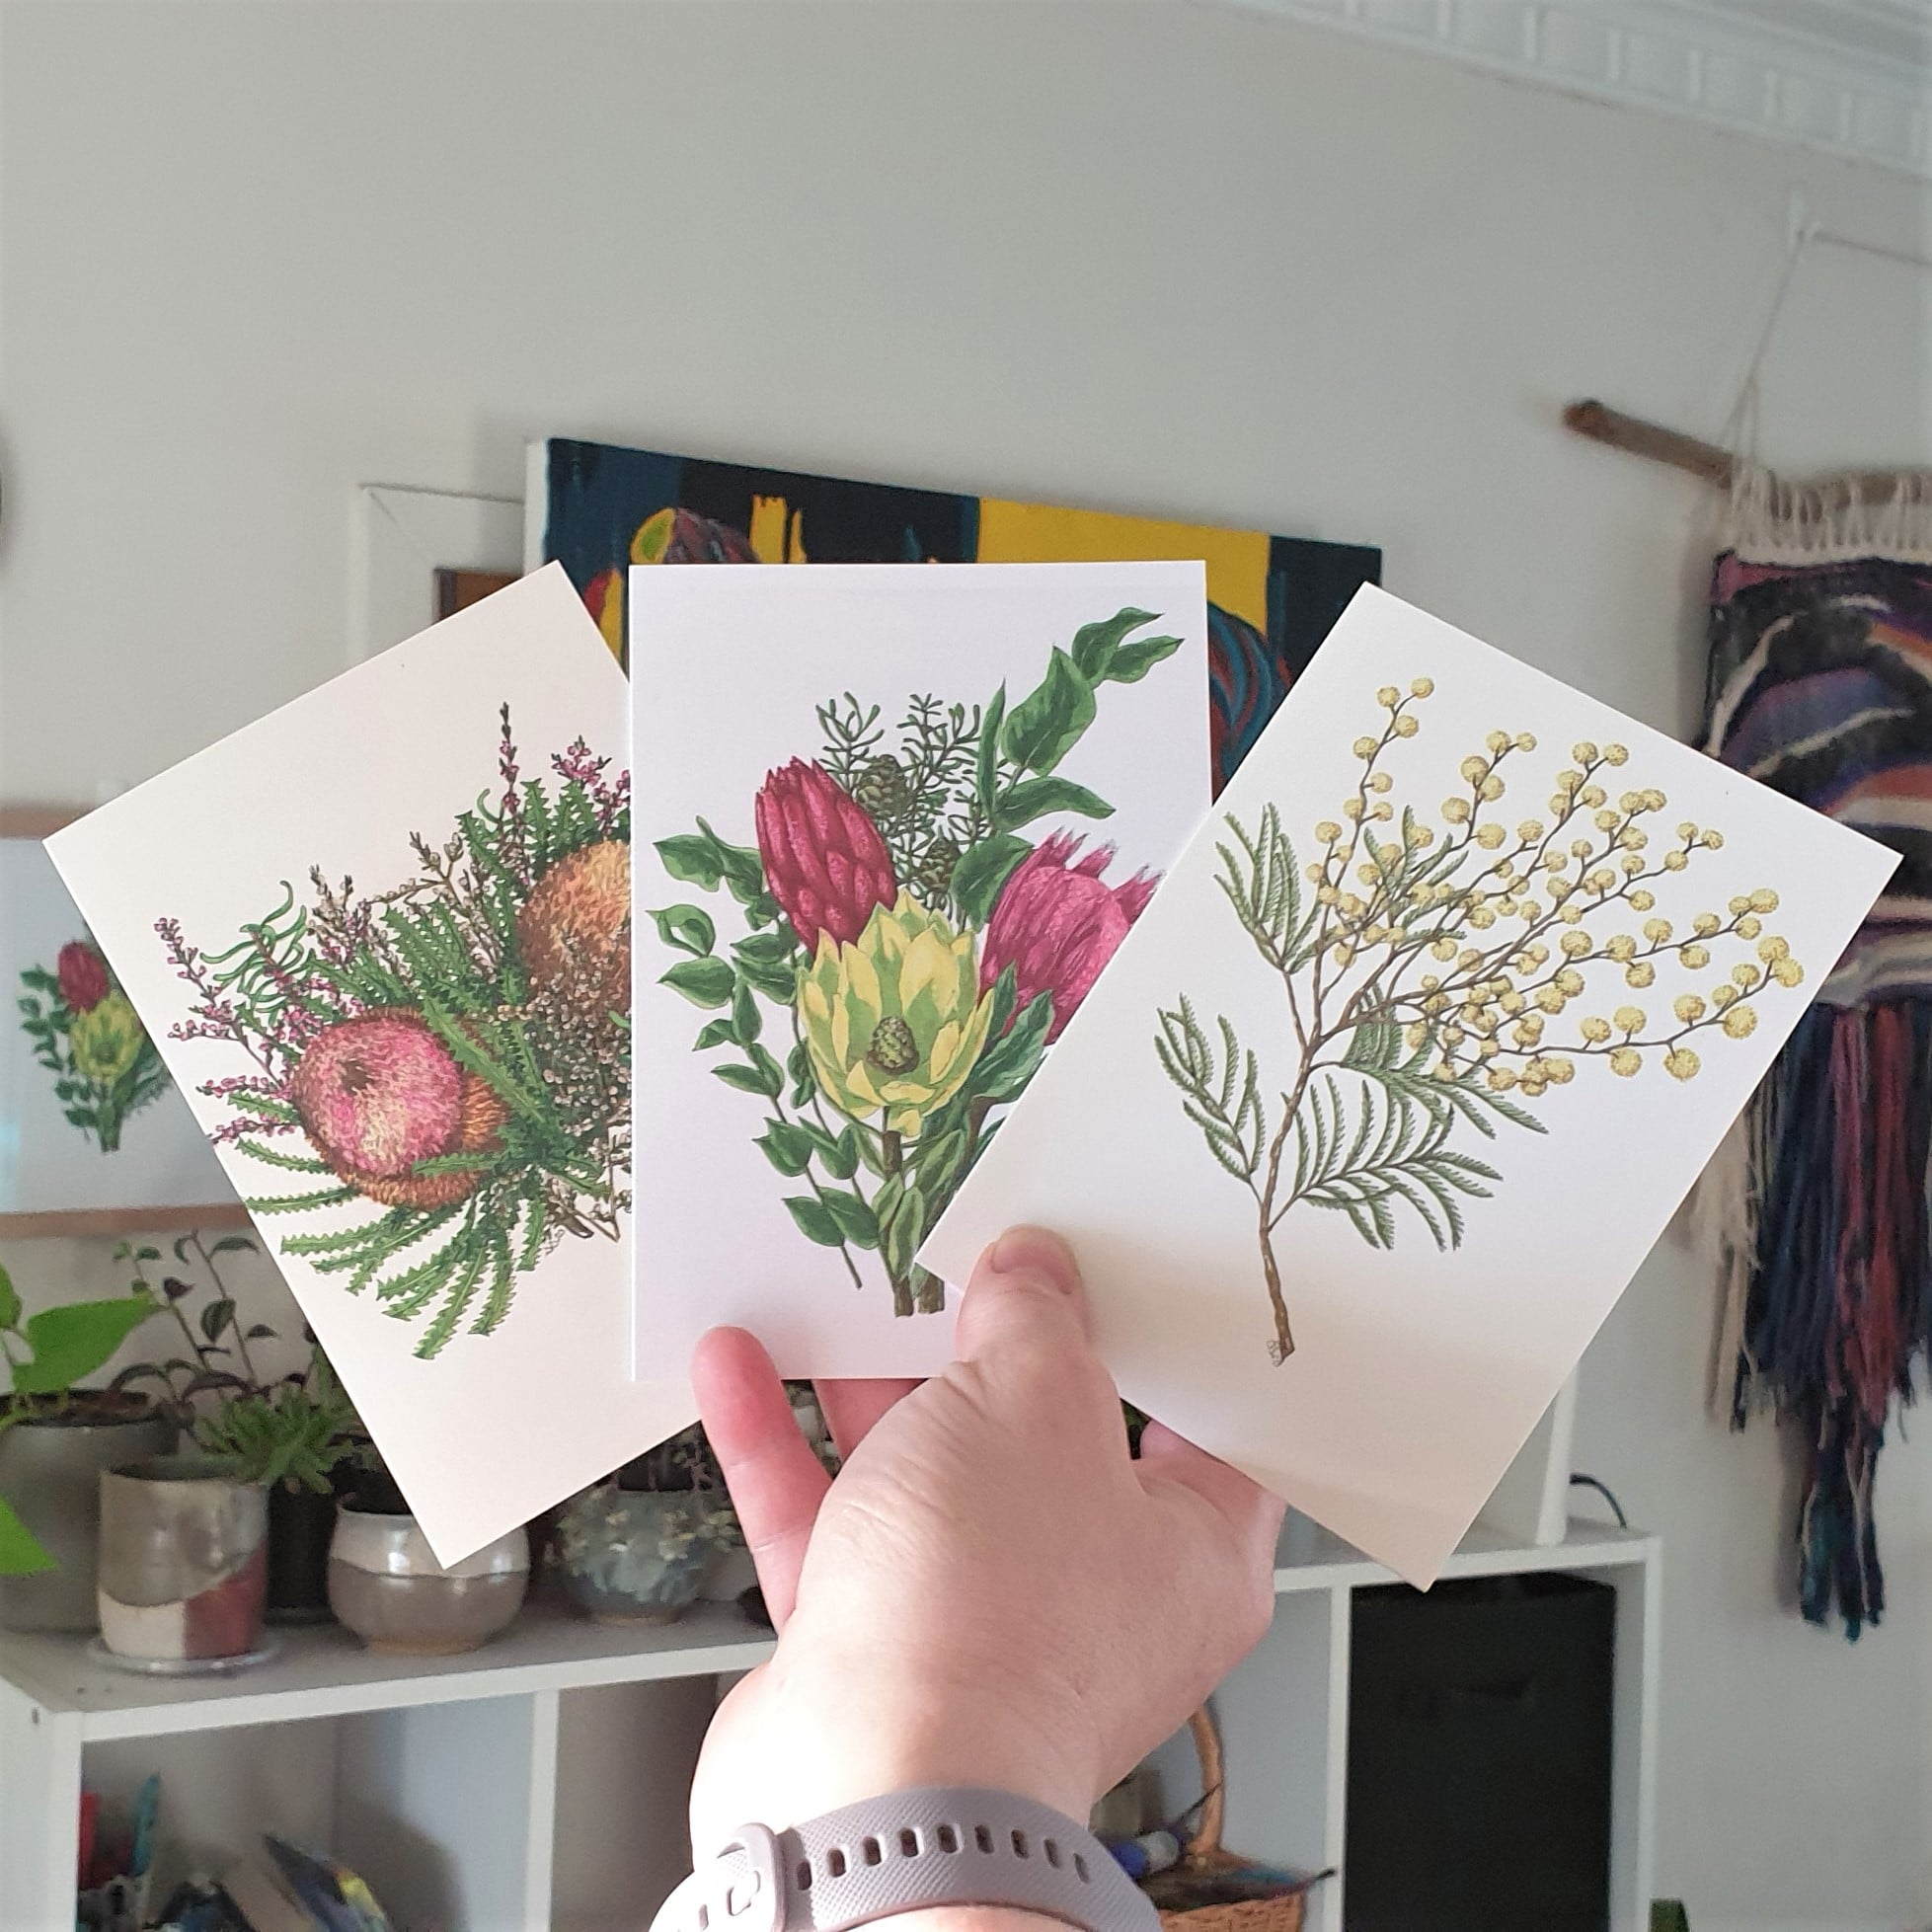 'Aussie Flower 1' Three Card Pack Greeting Cards Botanical Collection Sarah Sheldon Art By A Vibrant Nest